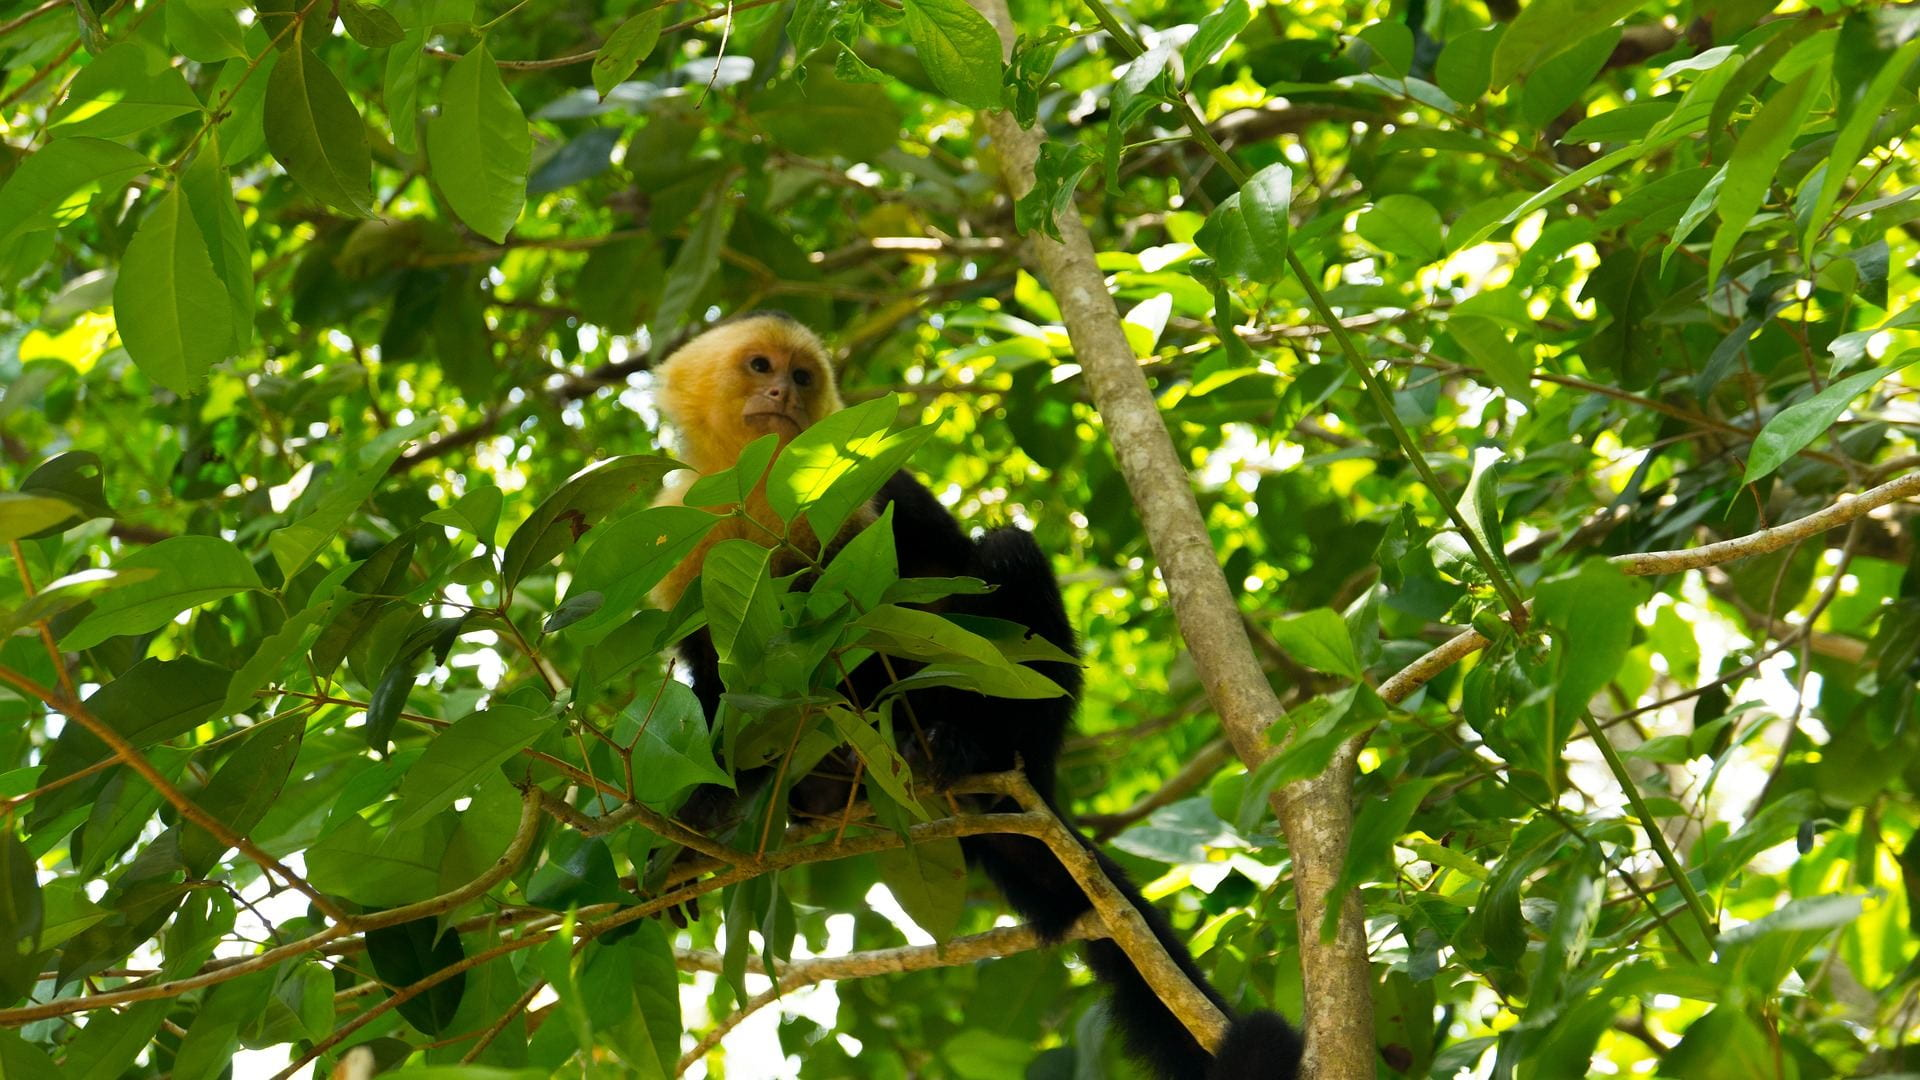 An adult capuchin monkey hides up in the trees.